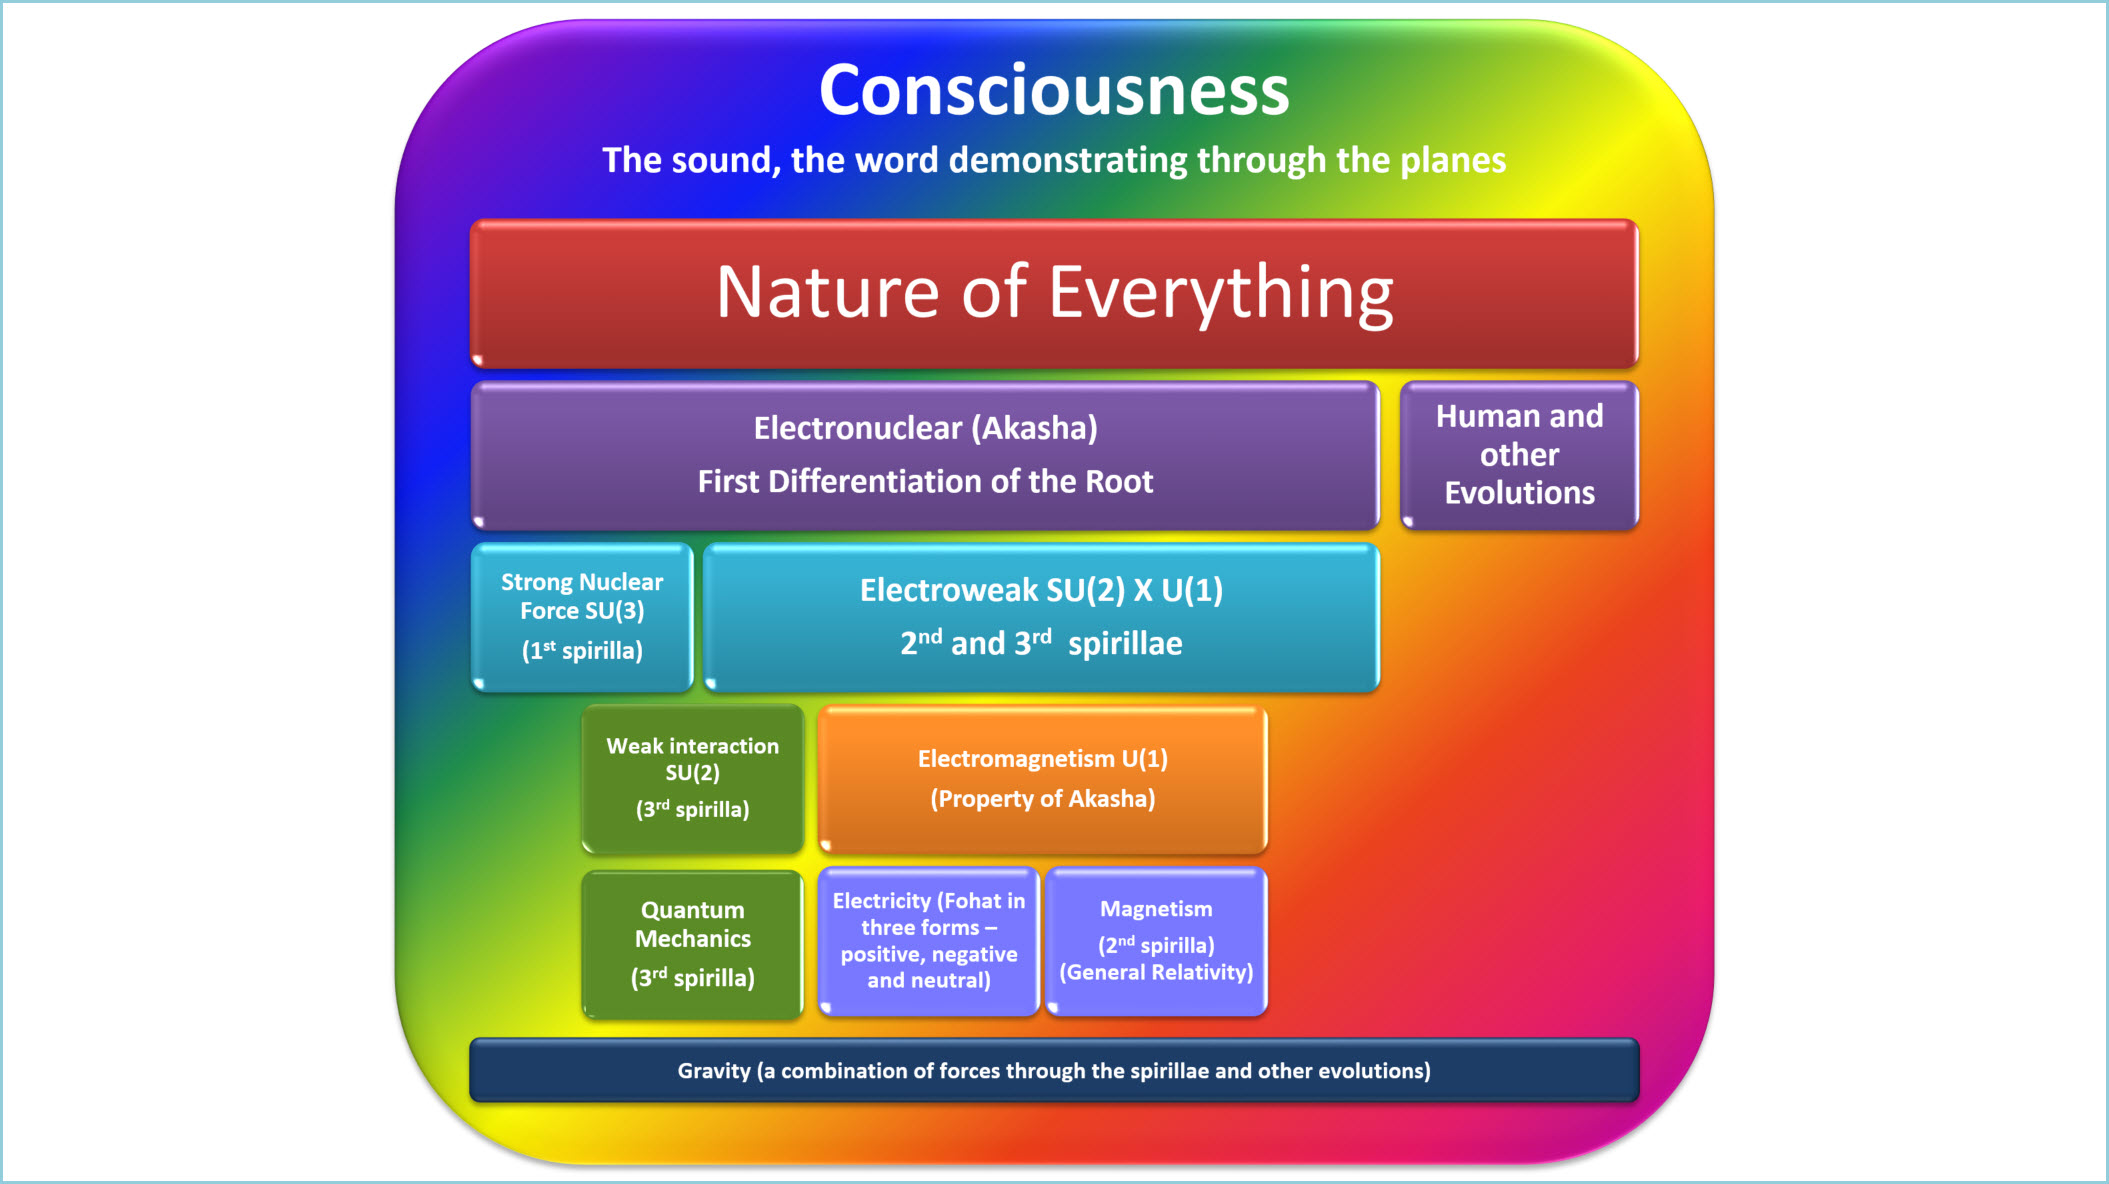 The Nature of Everything